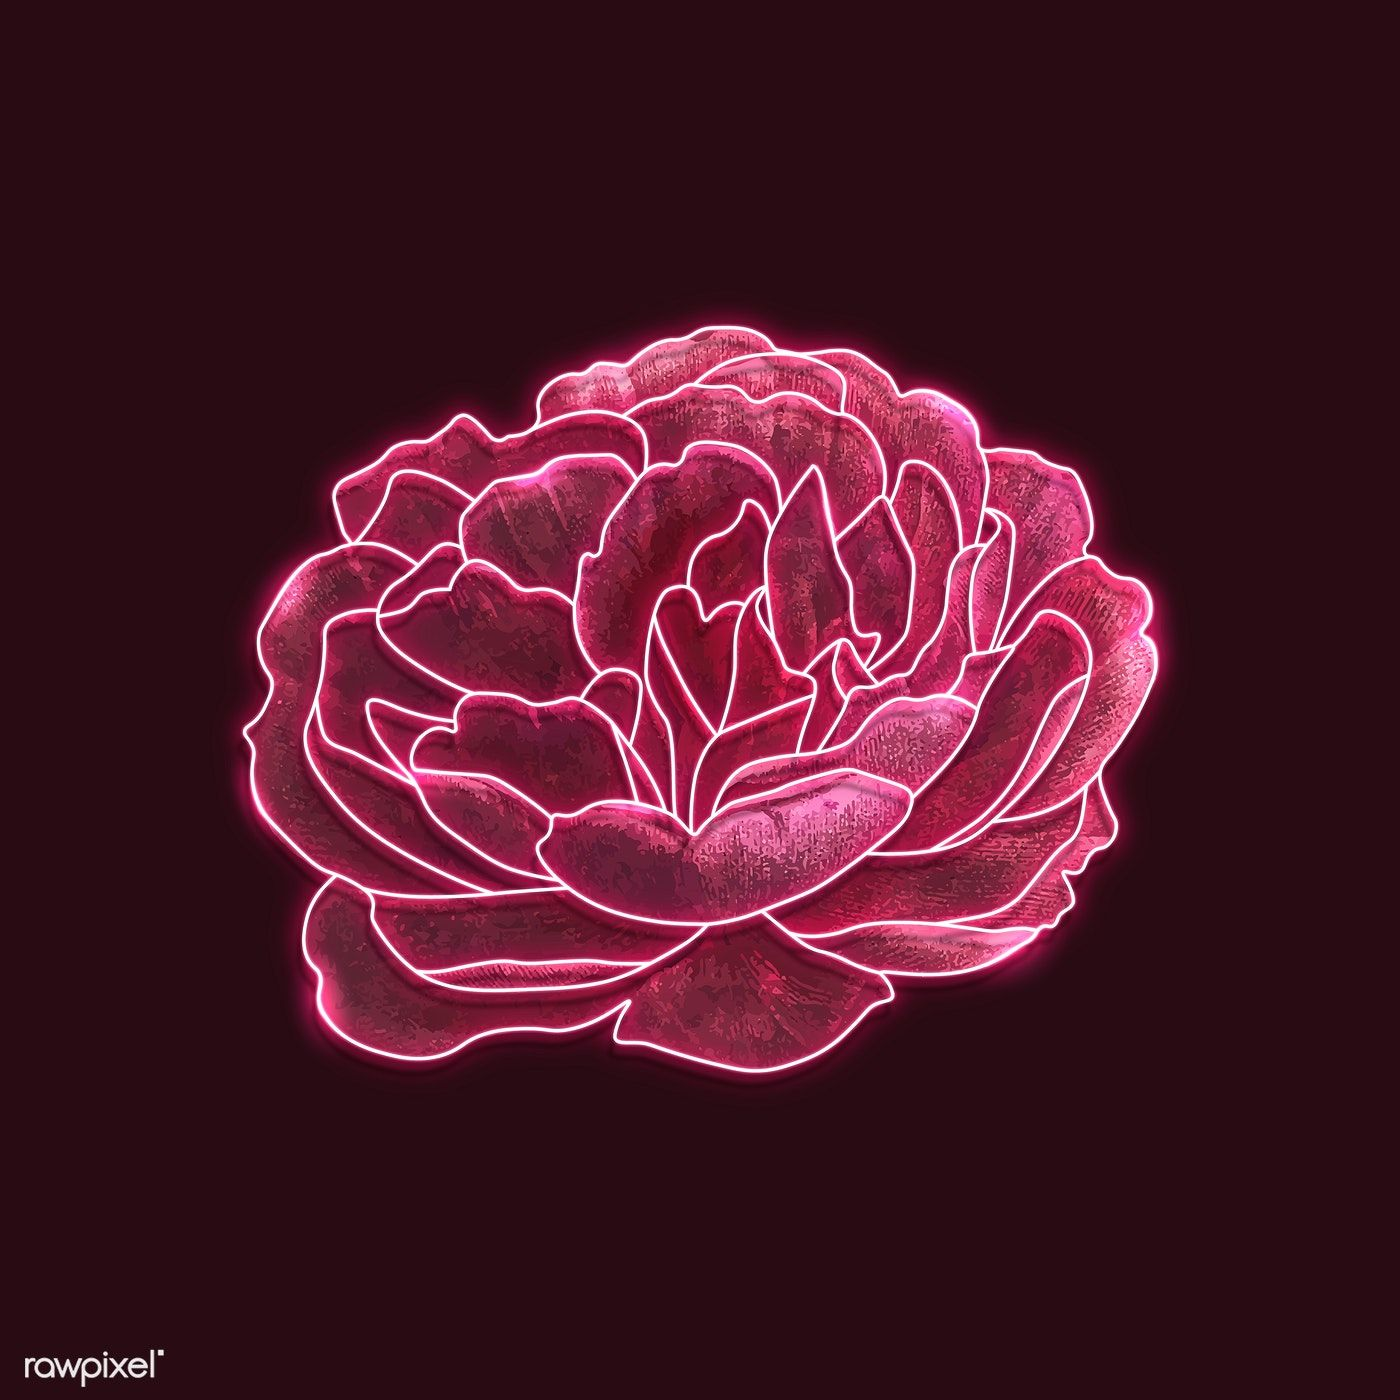 Download Premium Illustration Of Red Neon Rose On A Black Background In 2020 Neon Aesthetic Neon Flowers Neon Wallpaper